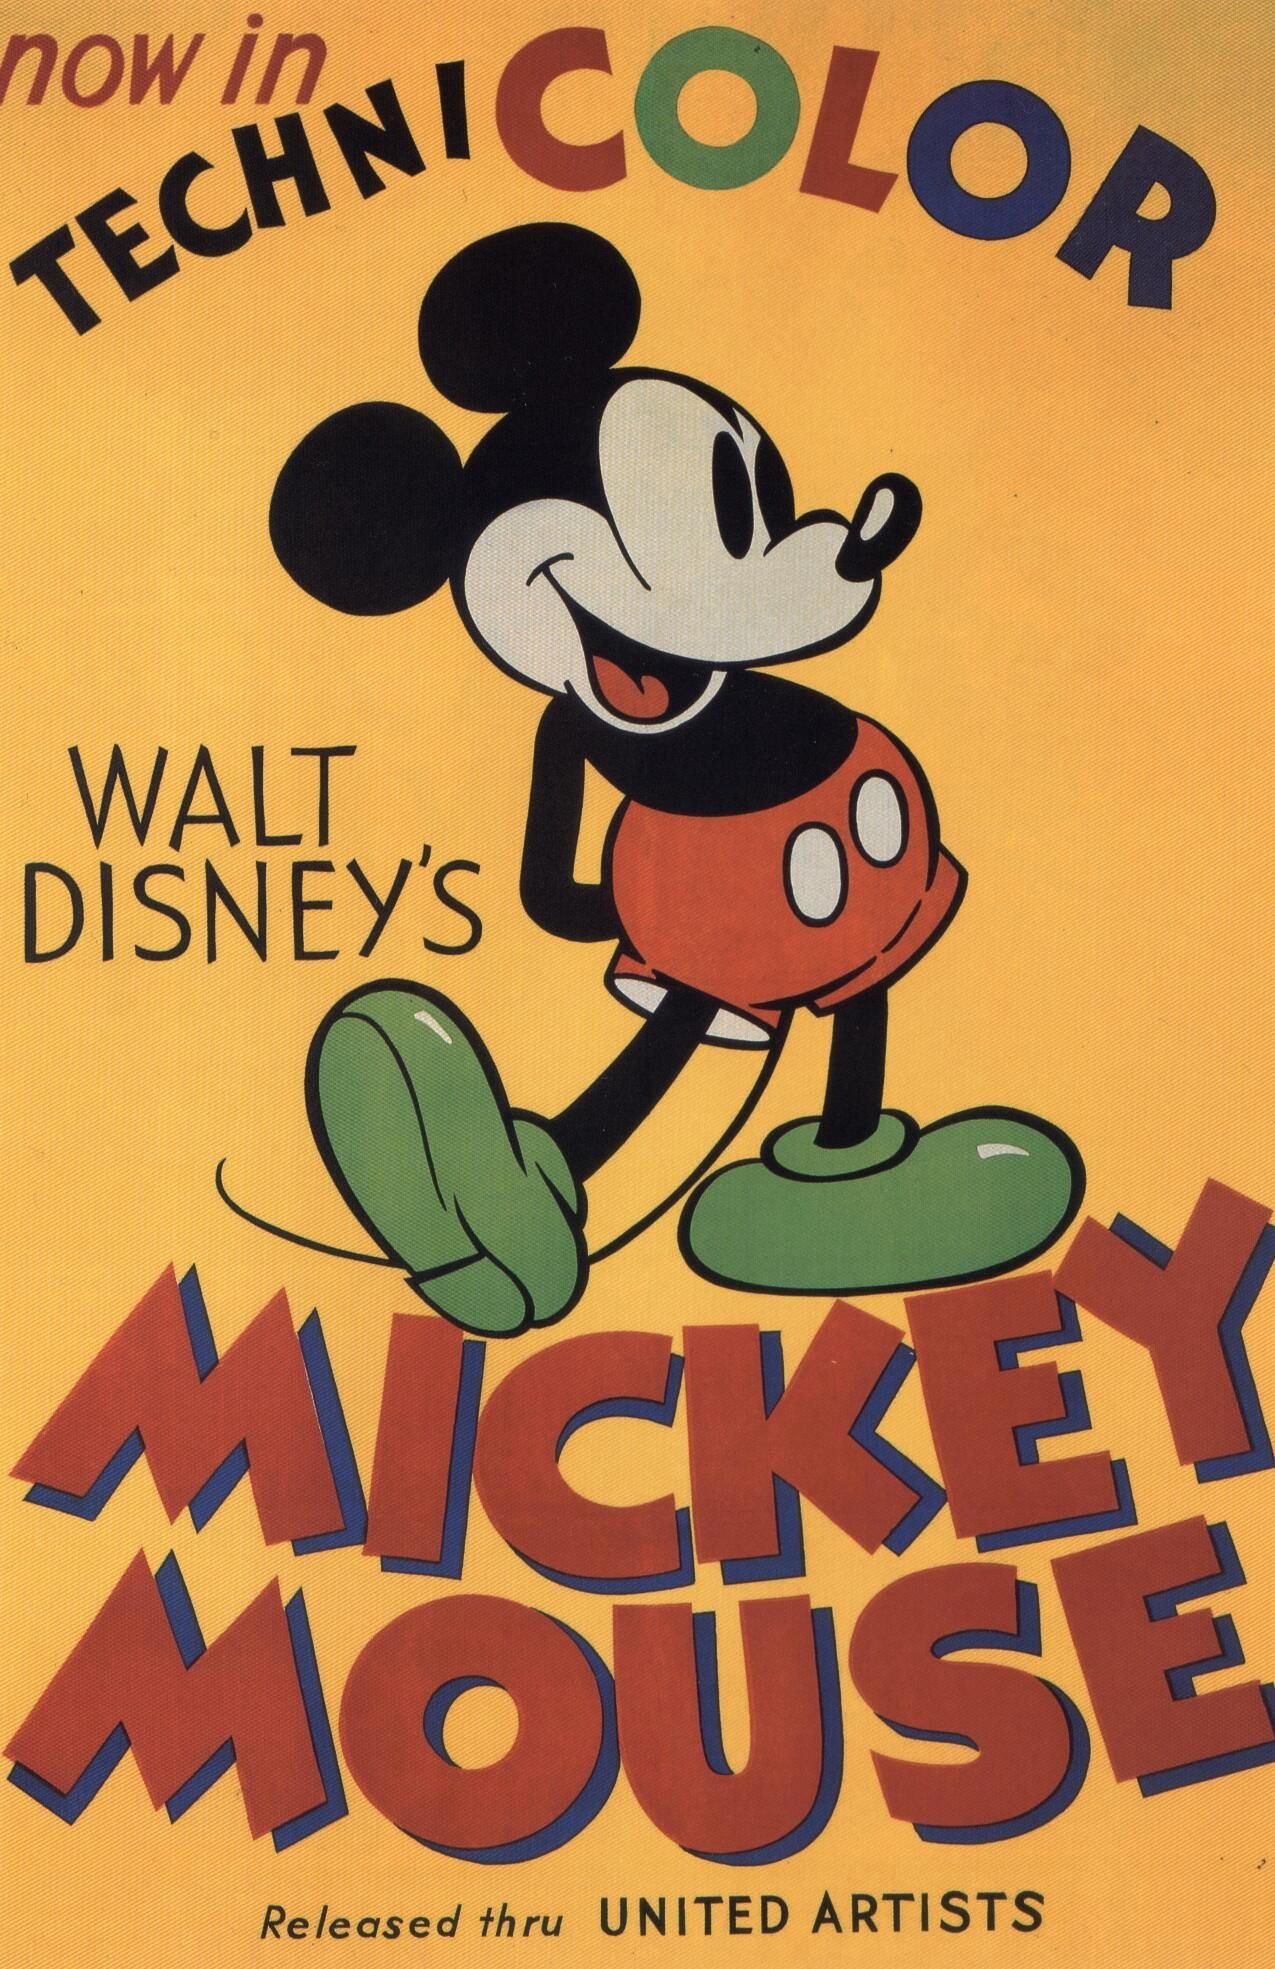 Mickey Mouse Awesome Vintage Disney Posters The Colors Pop To Life Vintage Disney Posters Classic Disney Movies Disney Posters